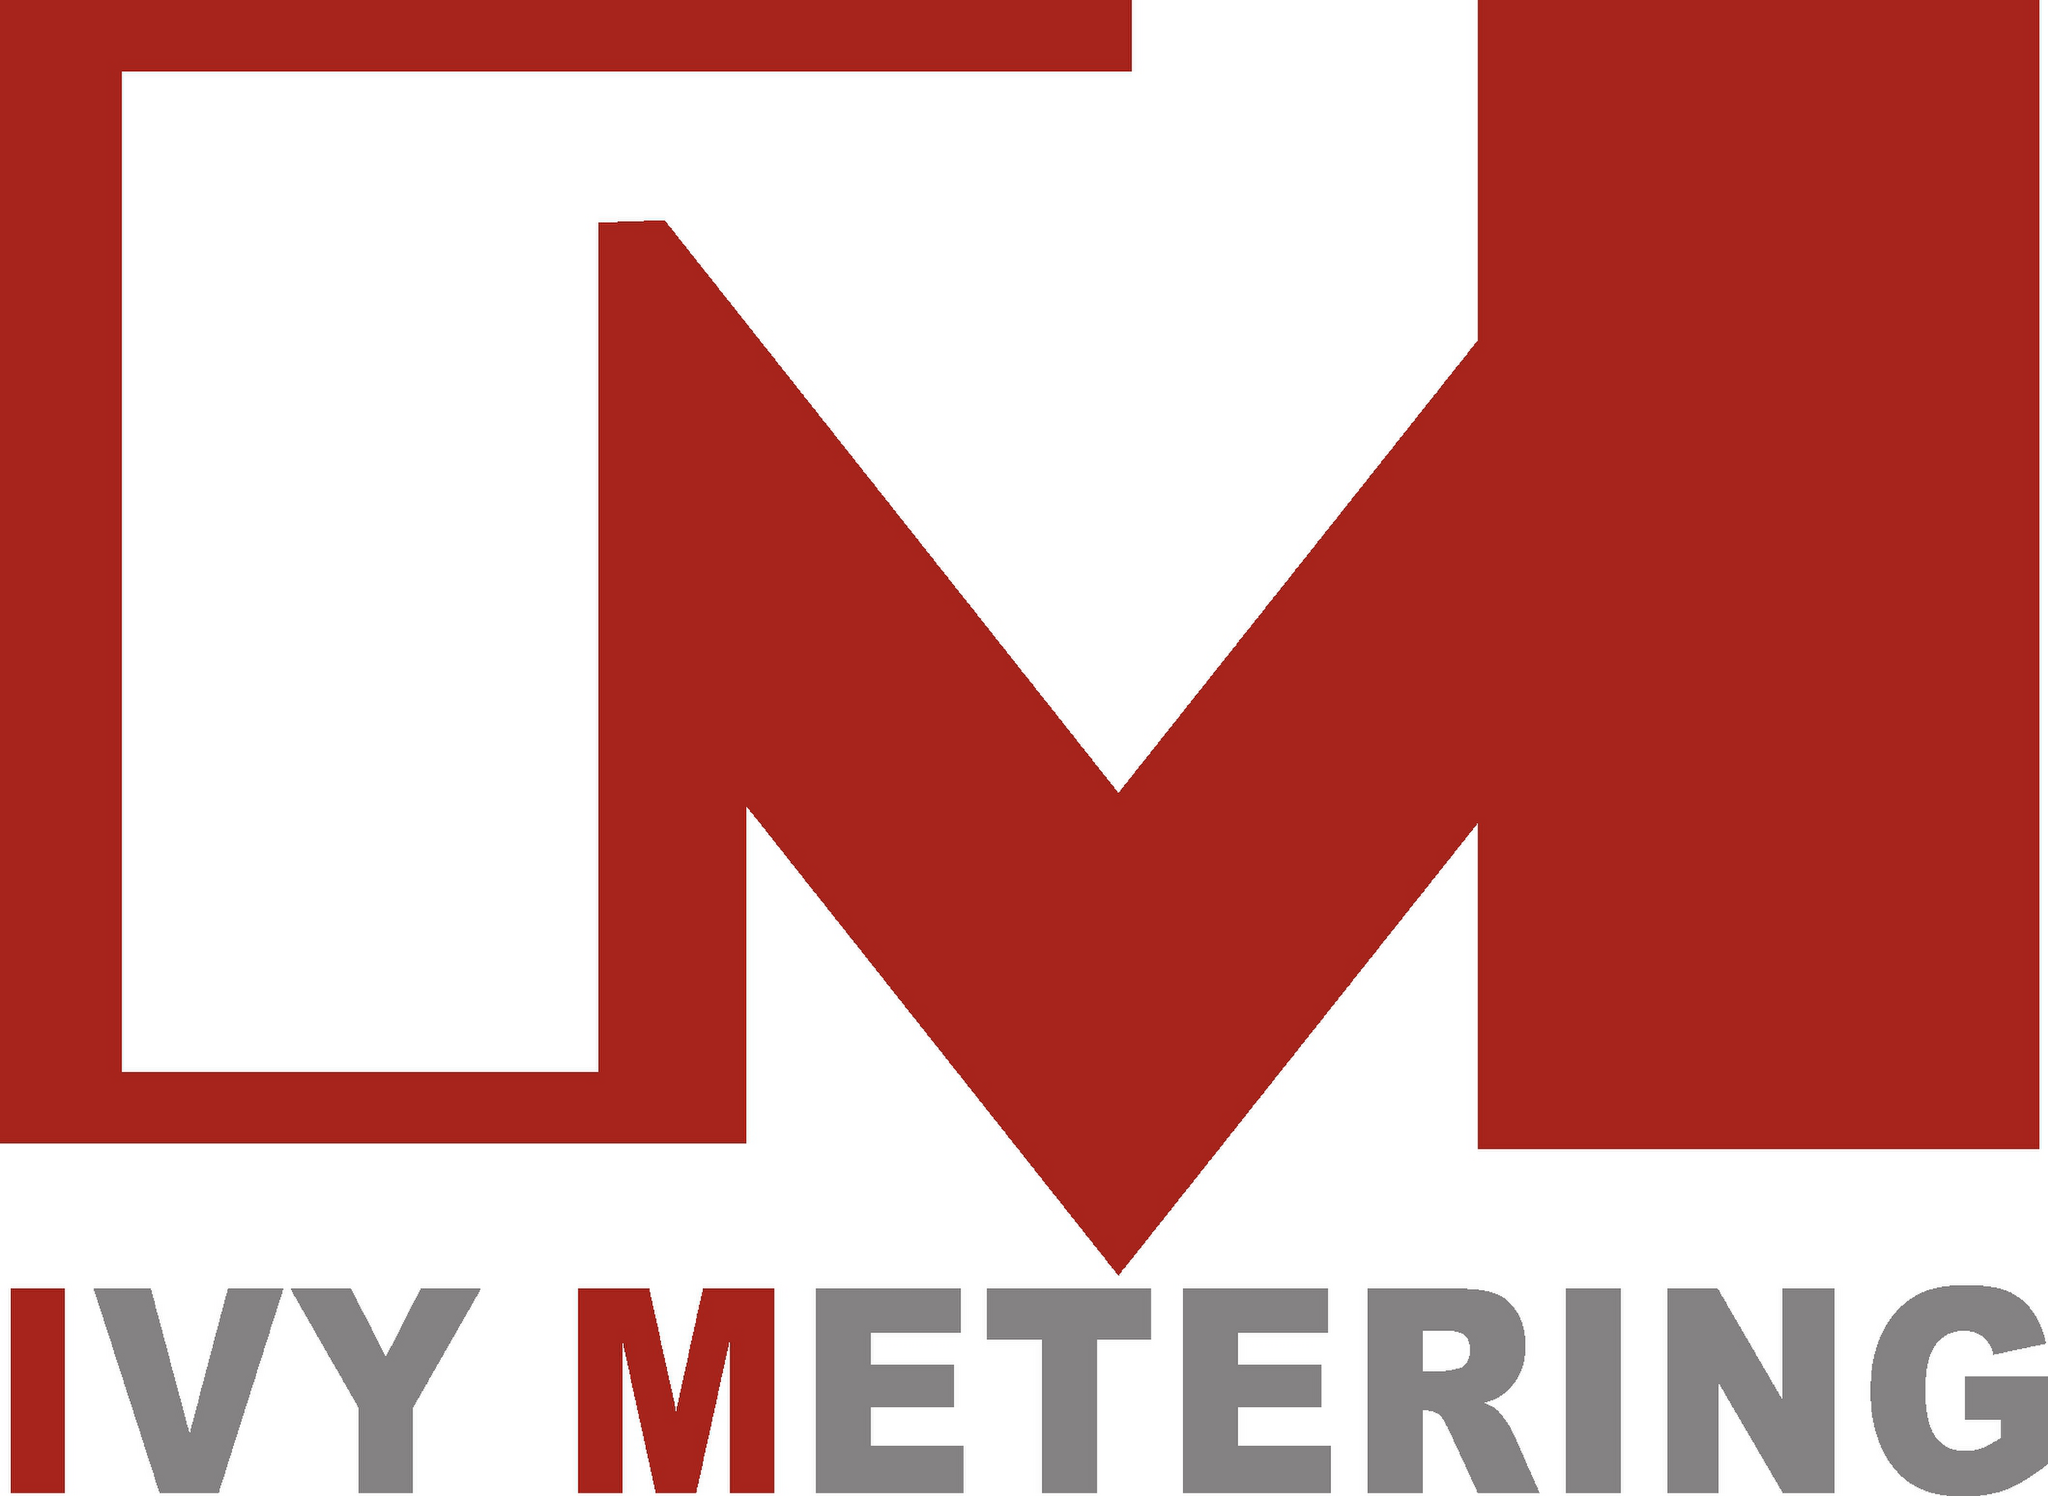 Ivy Metering Co.,Ltd